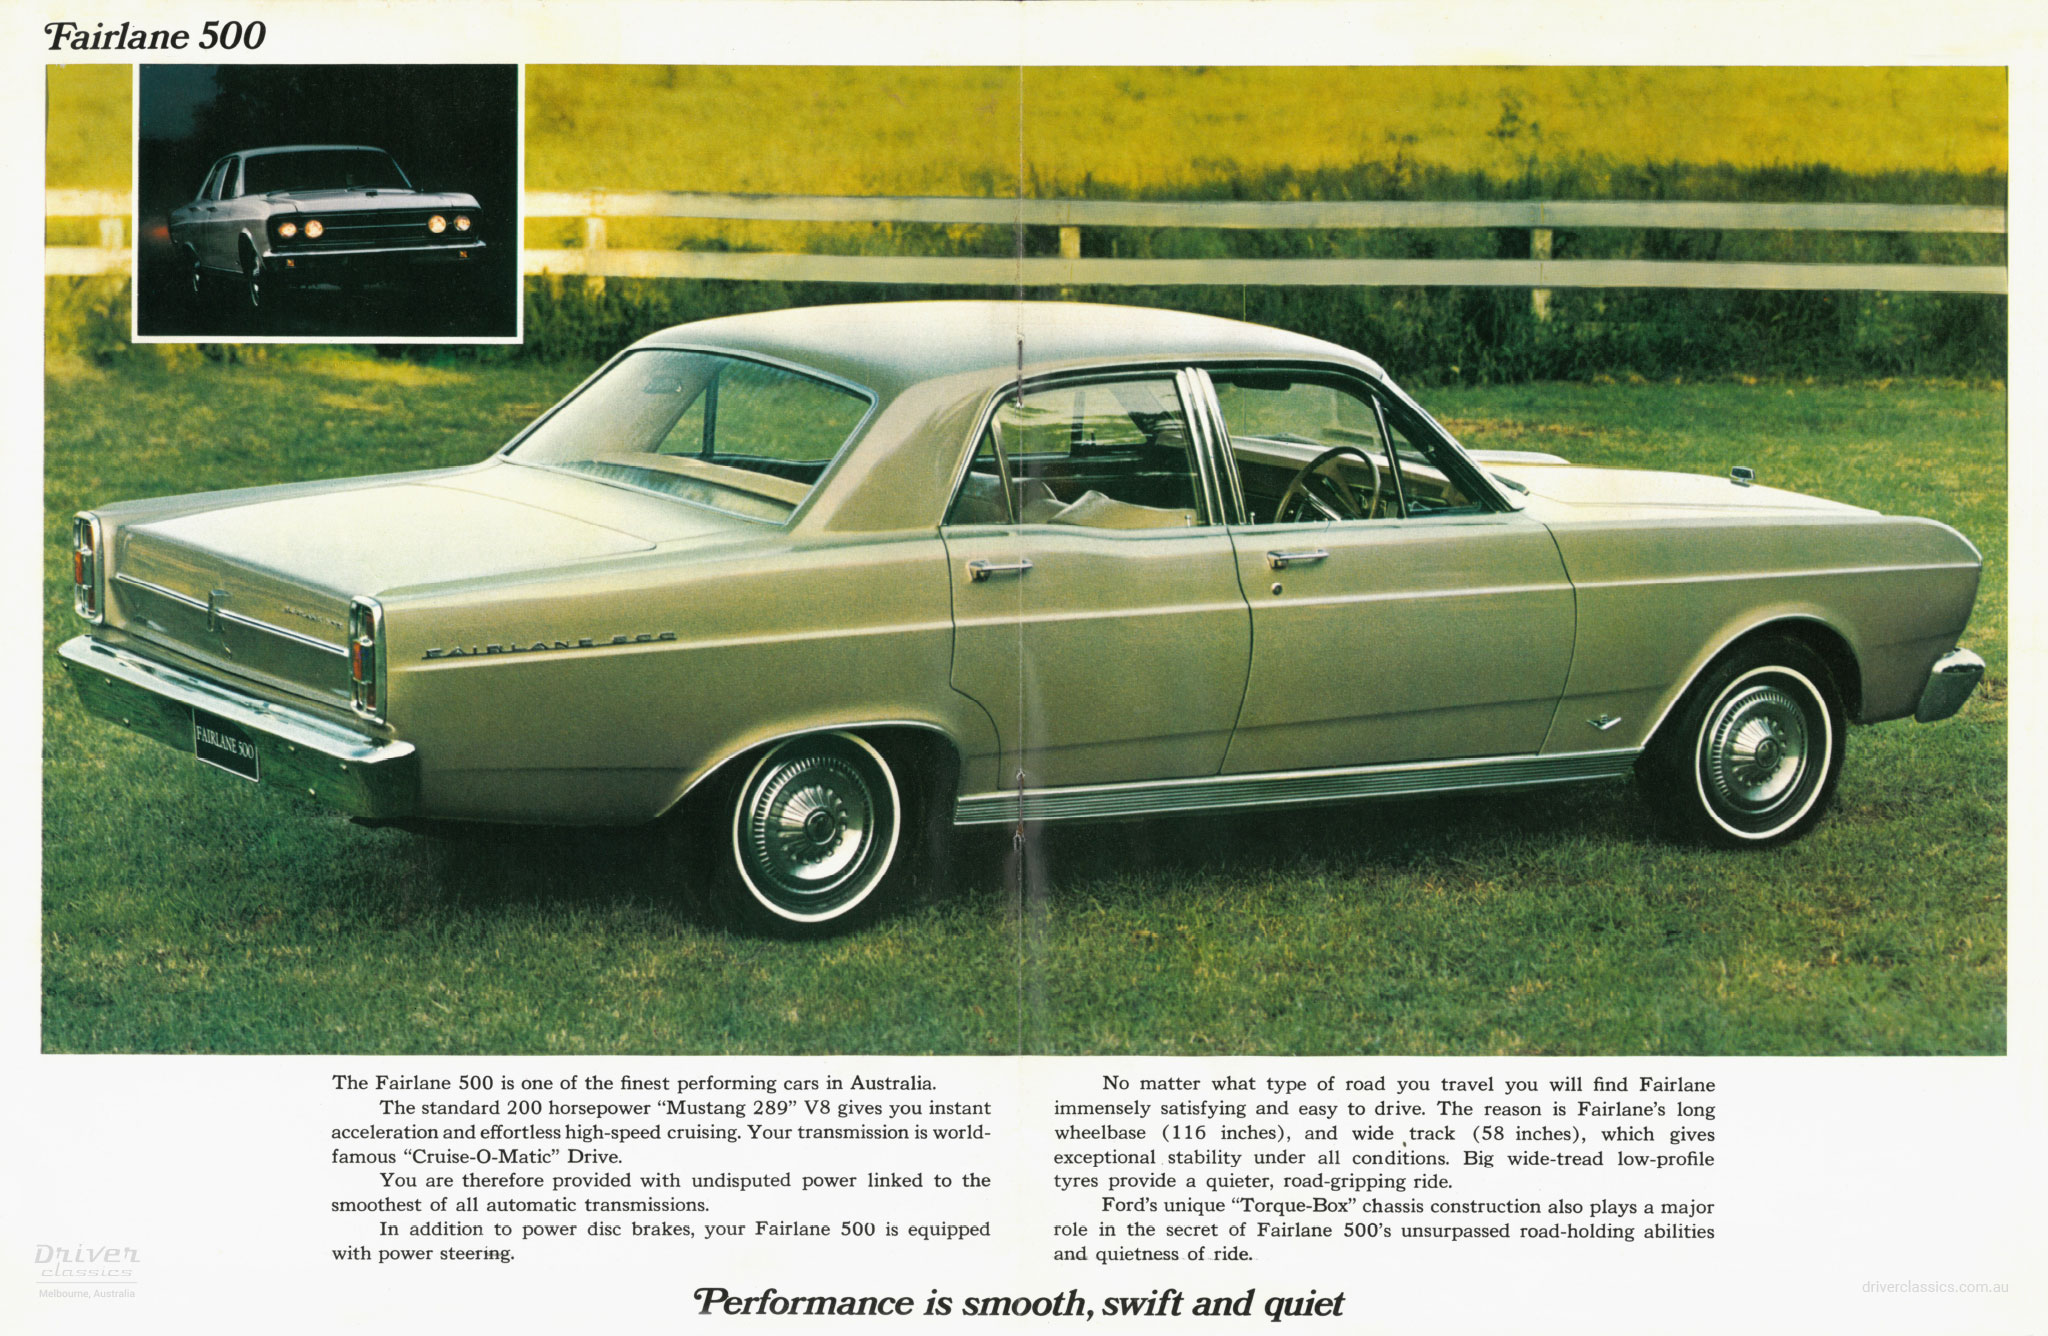 Page from 1967 Ford Fairlane 500 brochure